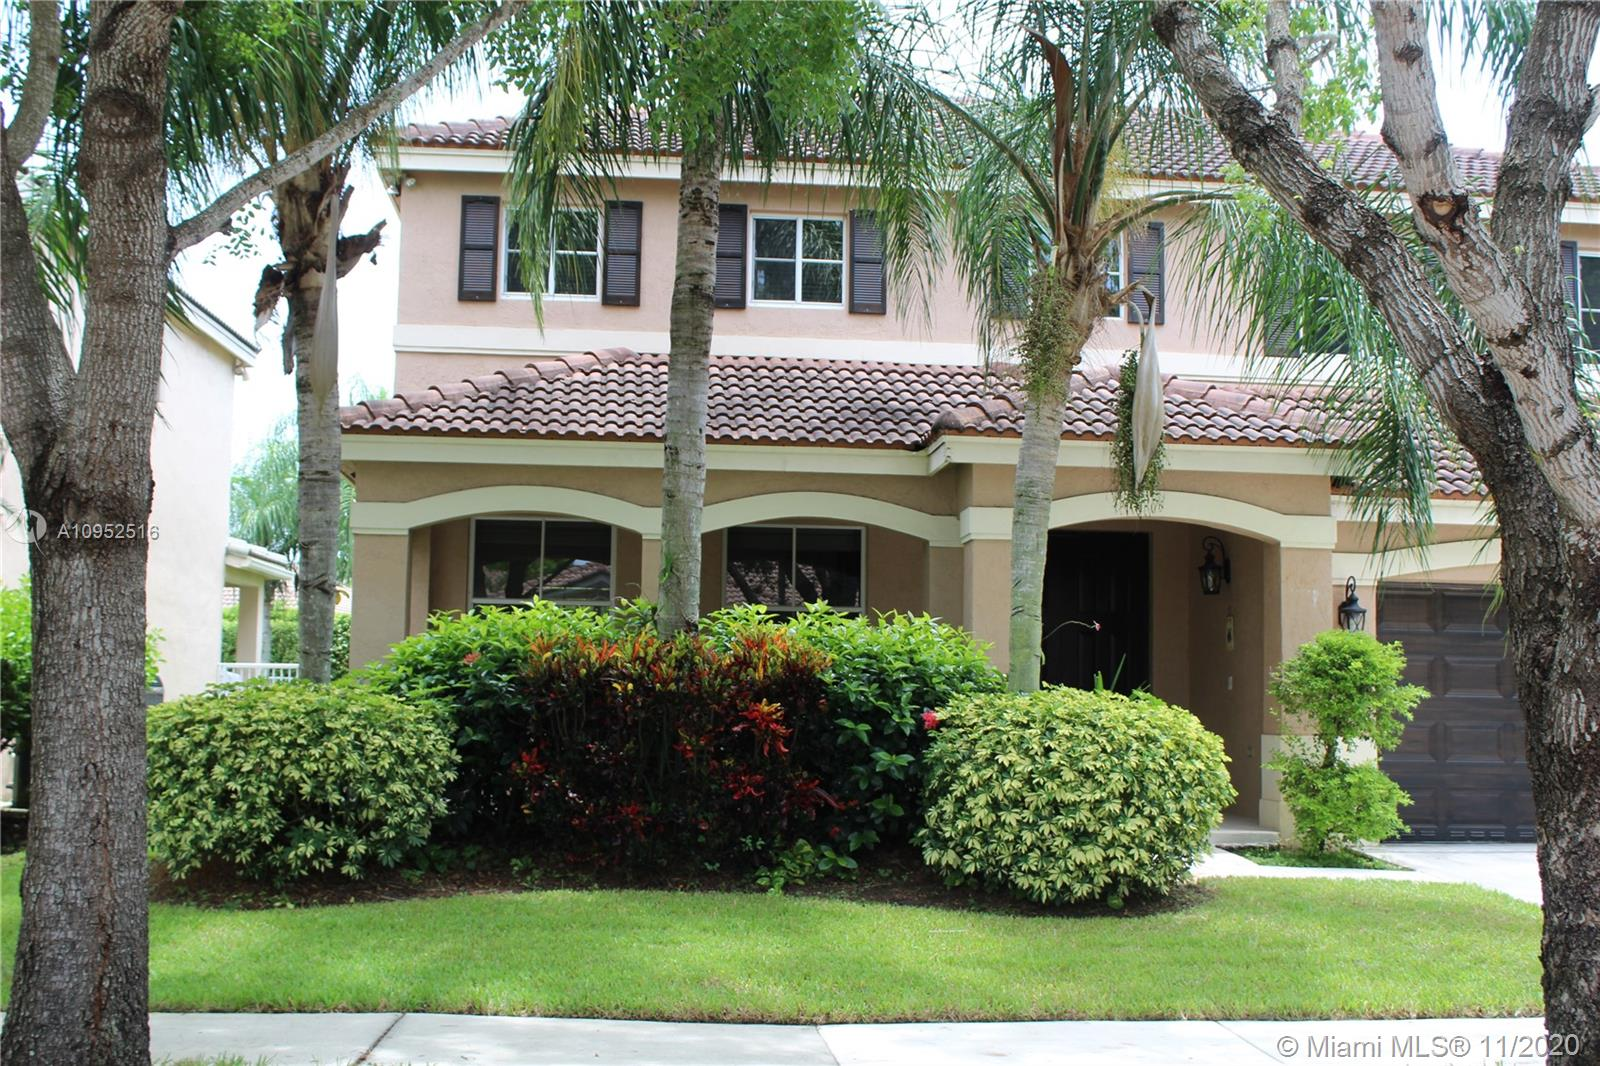 """AMAZING HOME IN THE MUCH SOUGHT AFTER """"SAVANNA COMMUNITY"""" IN WESTON HAS 4 BEDROOMS AND 1 BONUS ROOM ATTACHED TO THE MASTER BEDROOM AS AN OFFICE OR DEN, 2 FULL BTH AND 1 HALF BTH, 2 CAR GARAGE, ALL STAINLESS STEAL APPLIANCES, HURRICANE SHUTTERS, IT ALSO HAS A SEPARATE WASH/DRYER LAUNDRY ROOM. THE COMMUNITY HAS GATED ENTRANCE, 24/7 SECURITY GUARD, COMMUNITY CLUBHOUSE WITH 3 OLYMPIC POOLS AND RECREATIONAL AREA FOR CHILDREN. PUT PUT GOLF COURSE AND REC ROOM."""